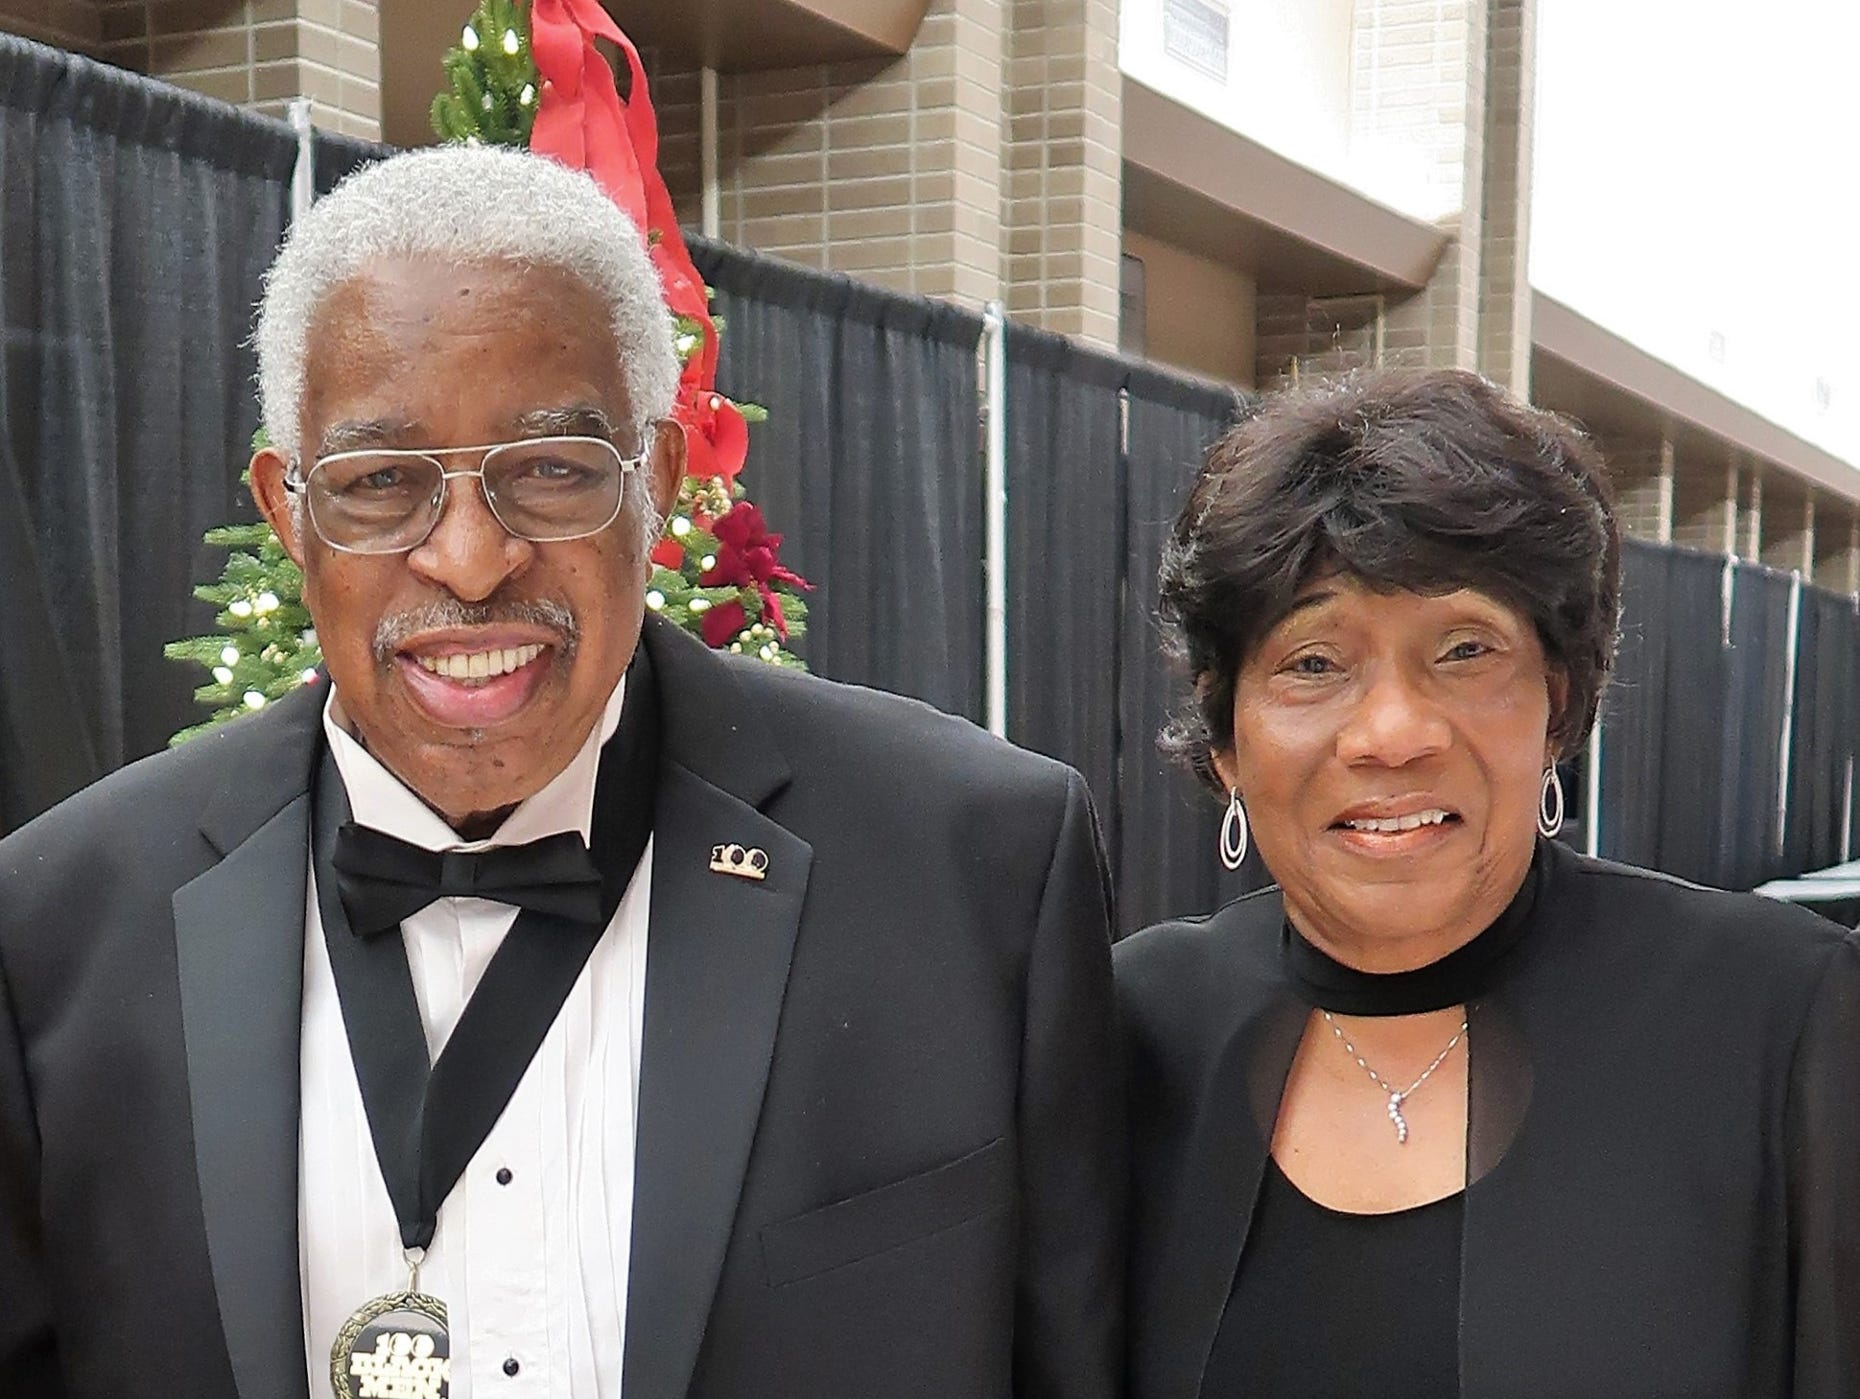 """The 26th annual 100 Black Men of West Tennessee Scholarship Gala, with the theme """"Holiday Splendor 2018"""", was held on Friday, December 28, 2018 at the Carl Perkins Civic Center in downtown Jackson.  The gala is held each year to support the Twenty-first Century Scholars, the F.A.M.I.L.Y. Mentoring and Book Buddies programs."""